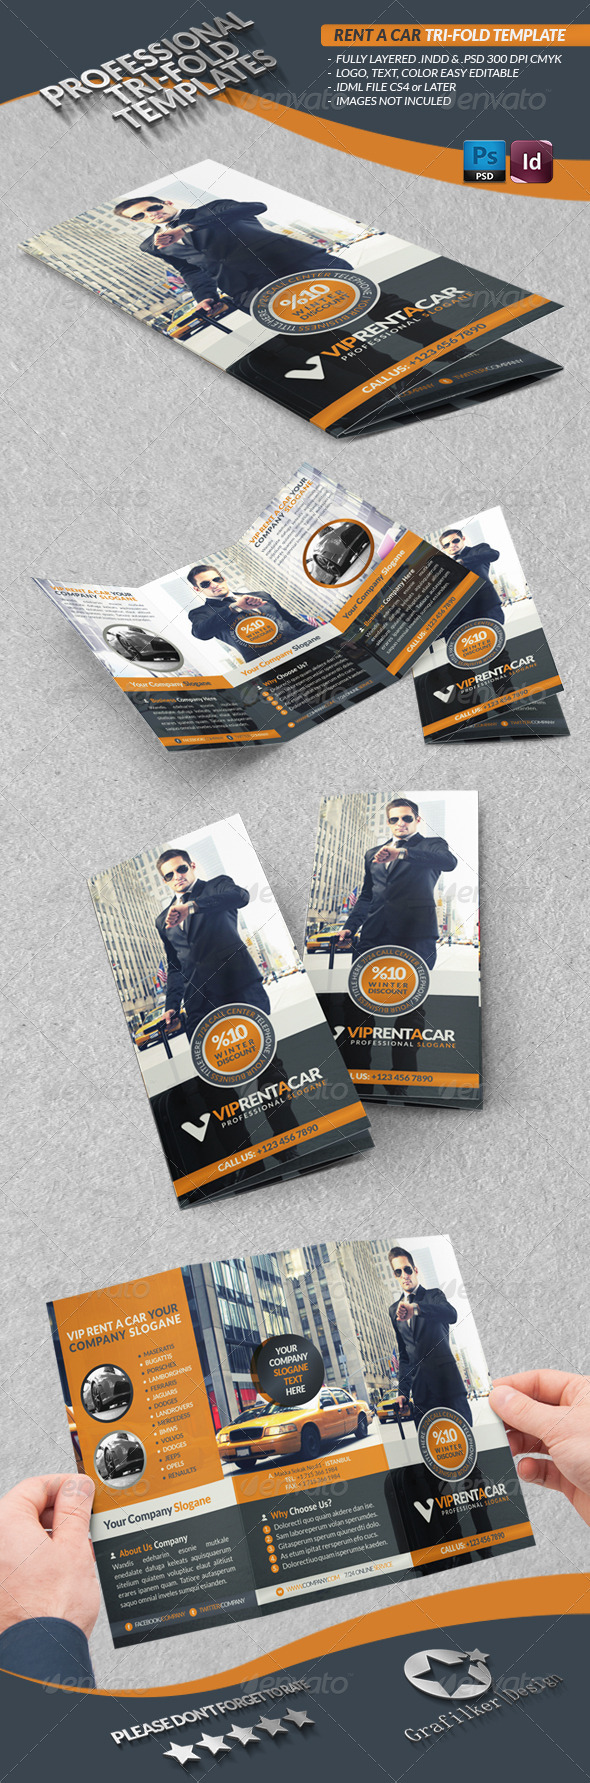 GraphicRiver Rent A Car Business Tri-Fold 3794657